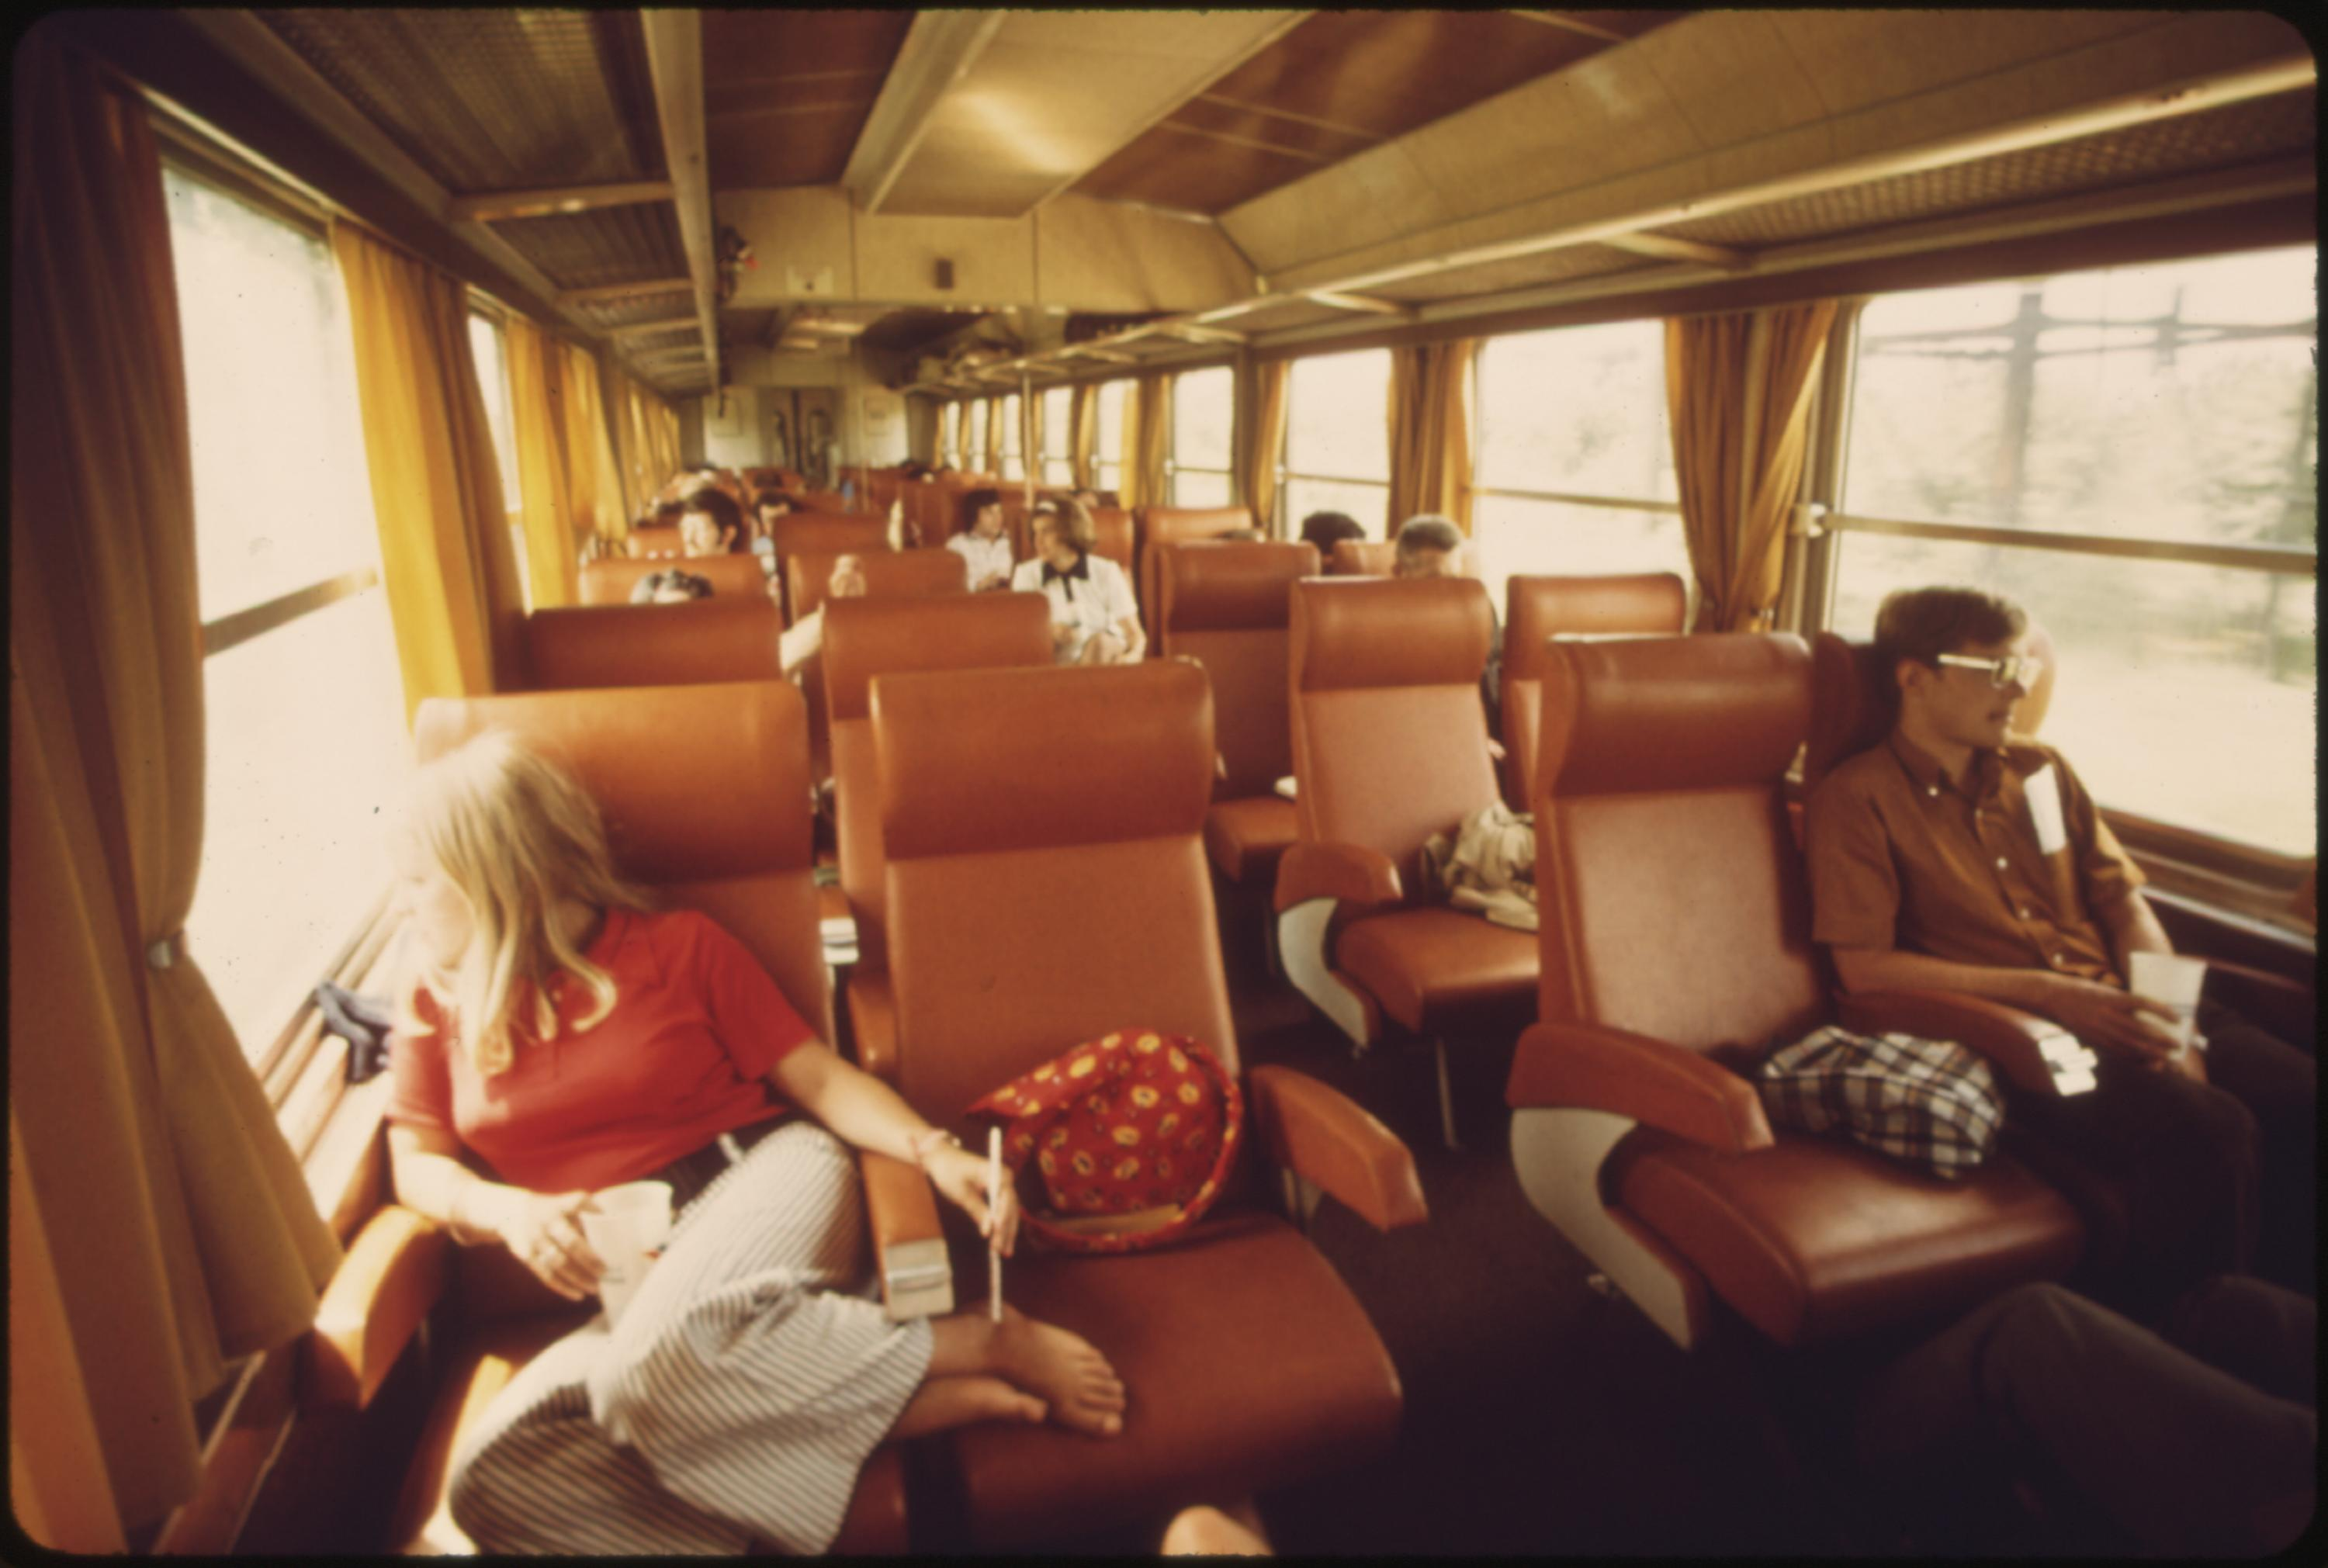 Passengers view the scenery between St. Louis, Missouri, and Chicago, Illinois, on the Amtrak turboliner, June 1974